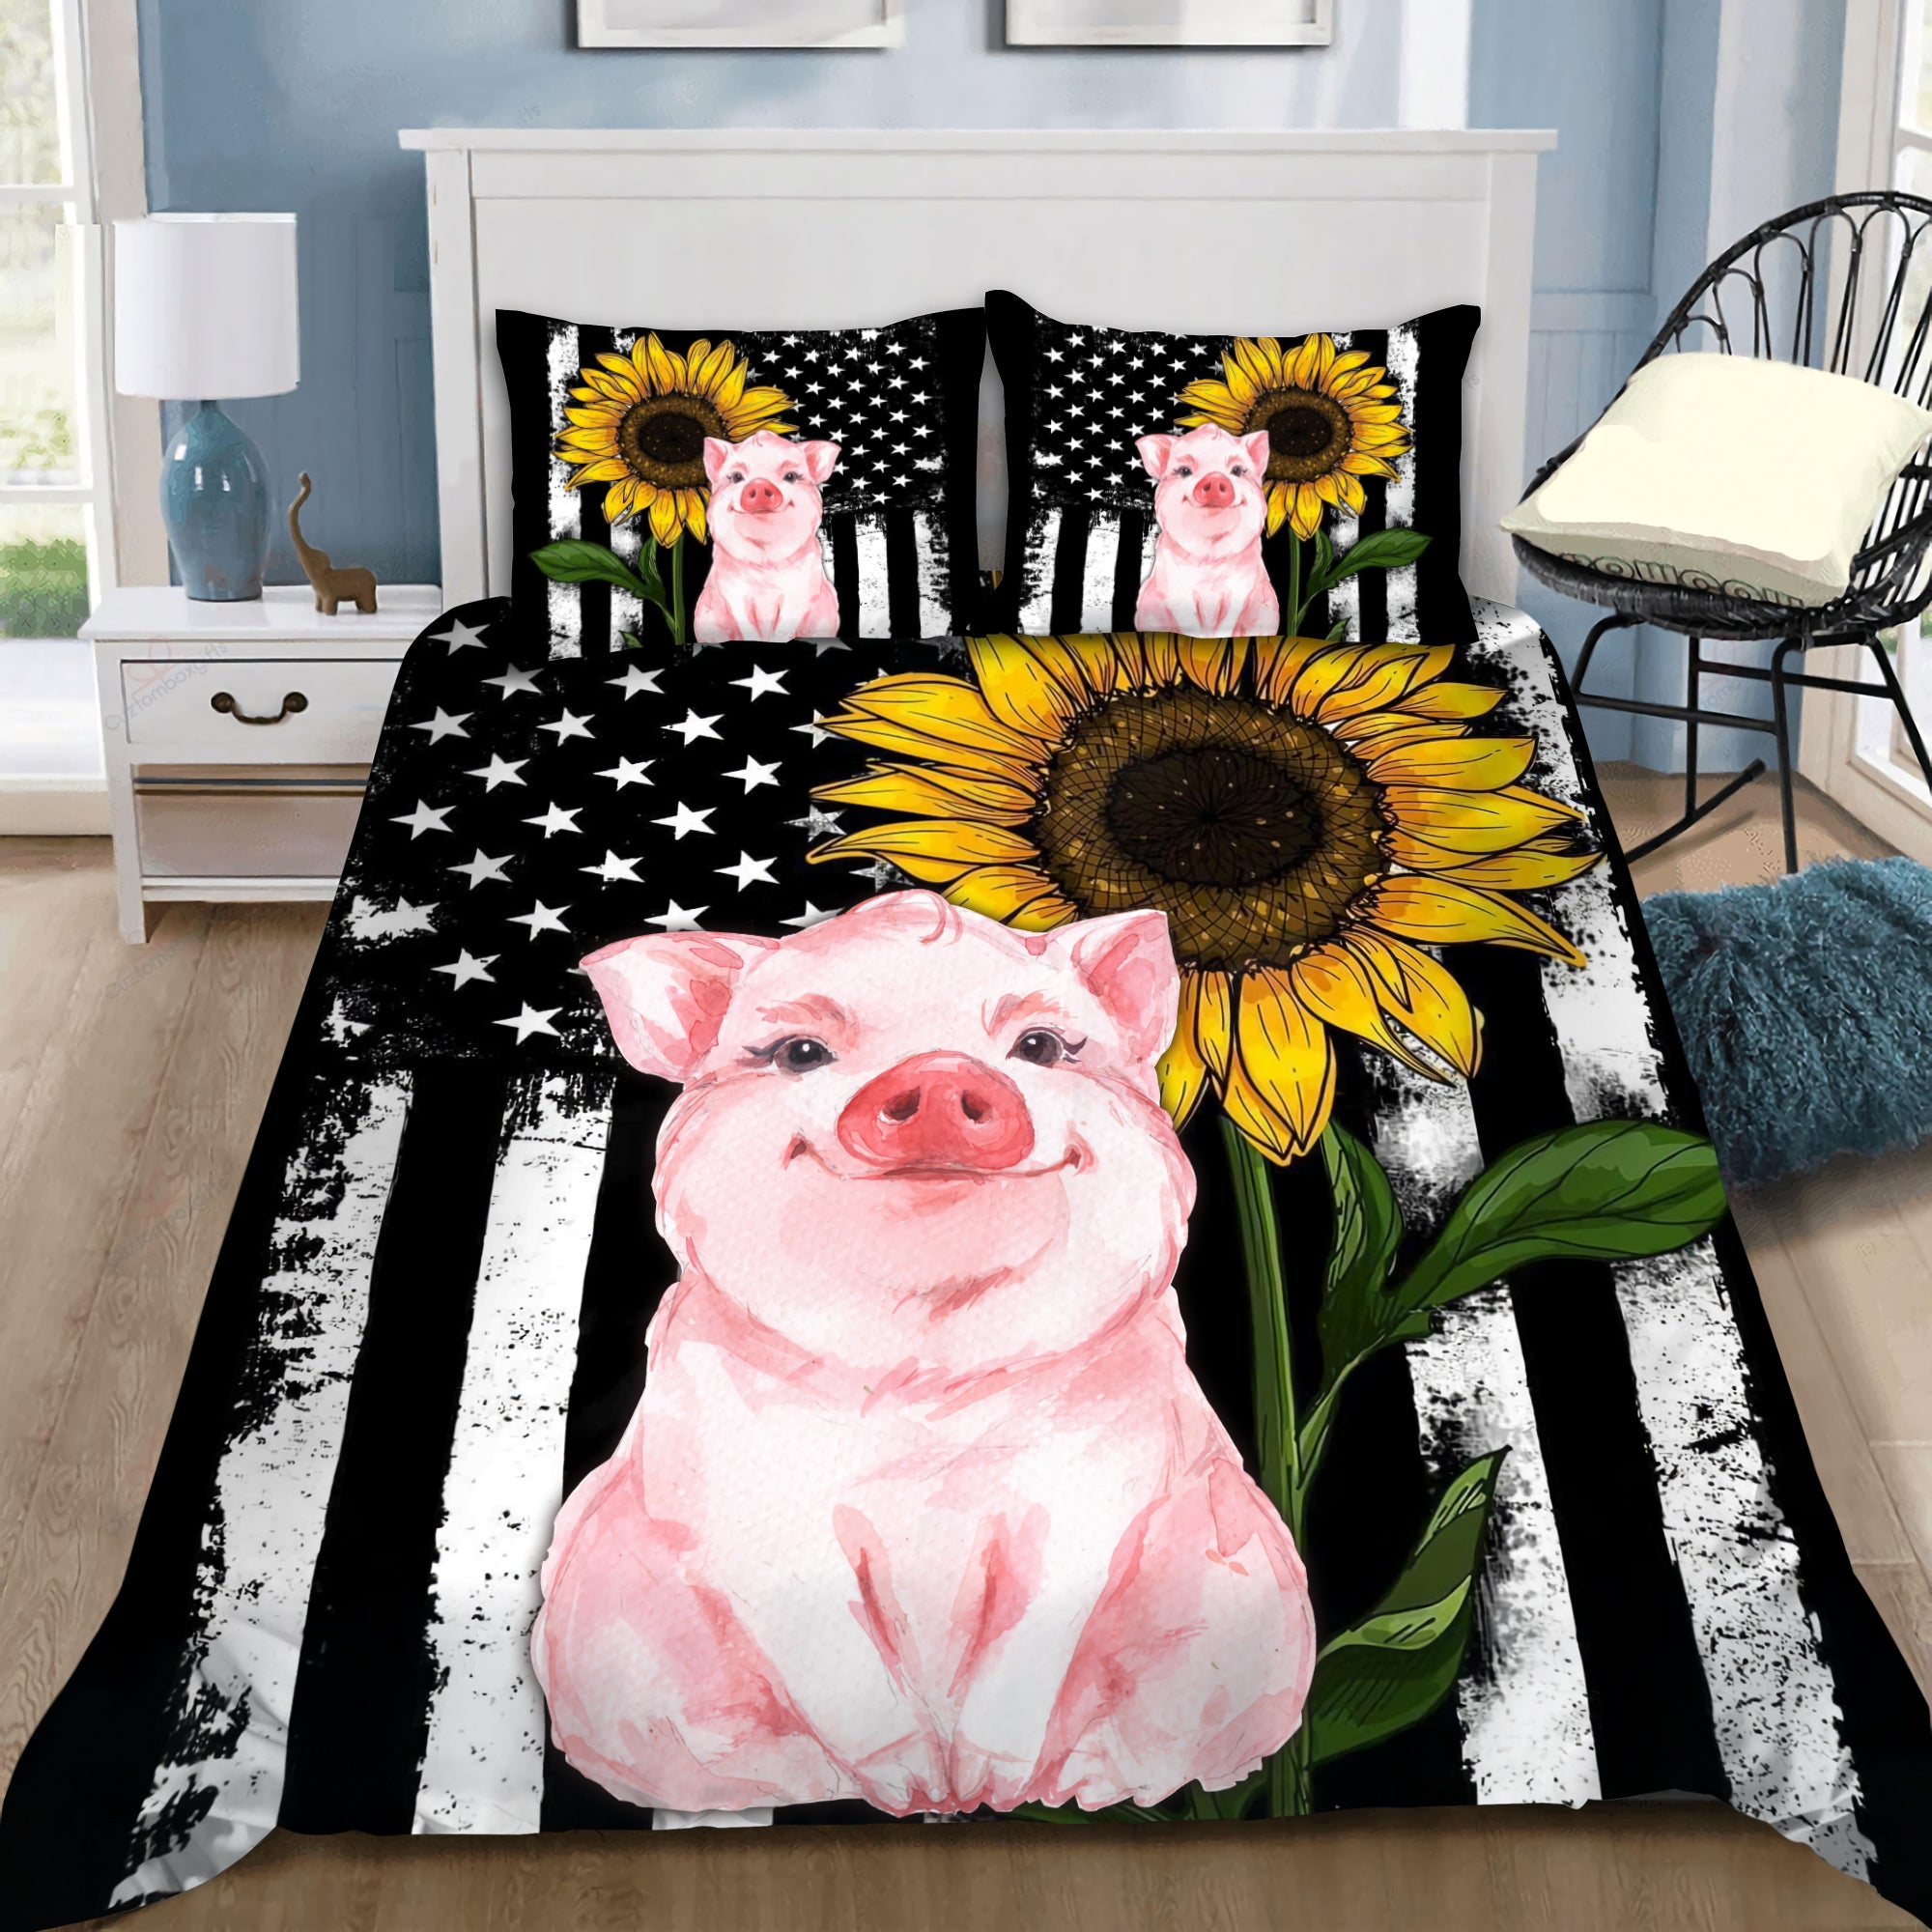 Lovely Pig Bedding Set HAC110706 - Amaze Style™-Quilt